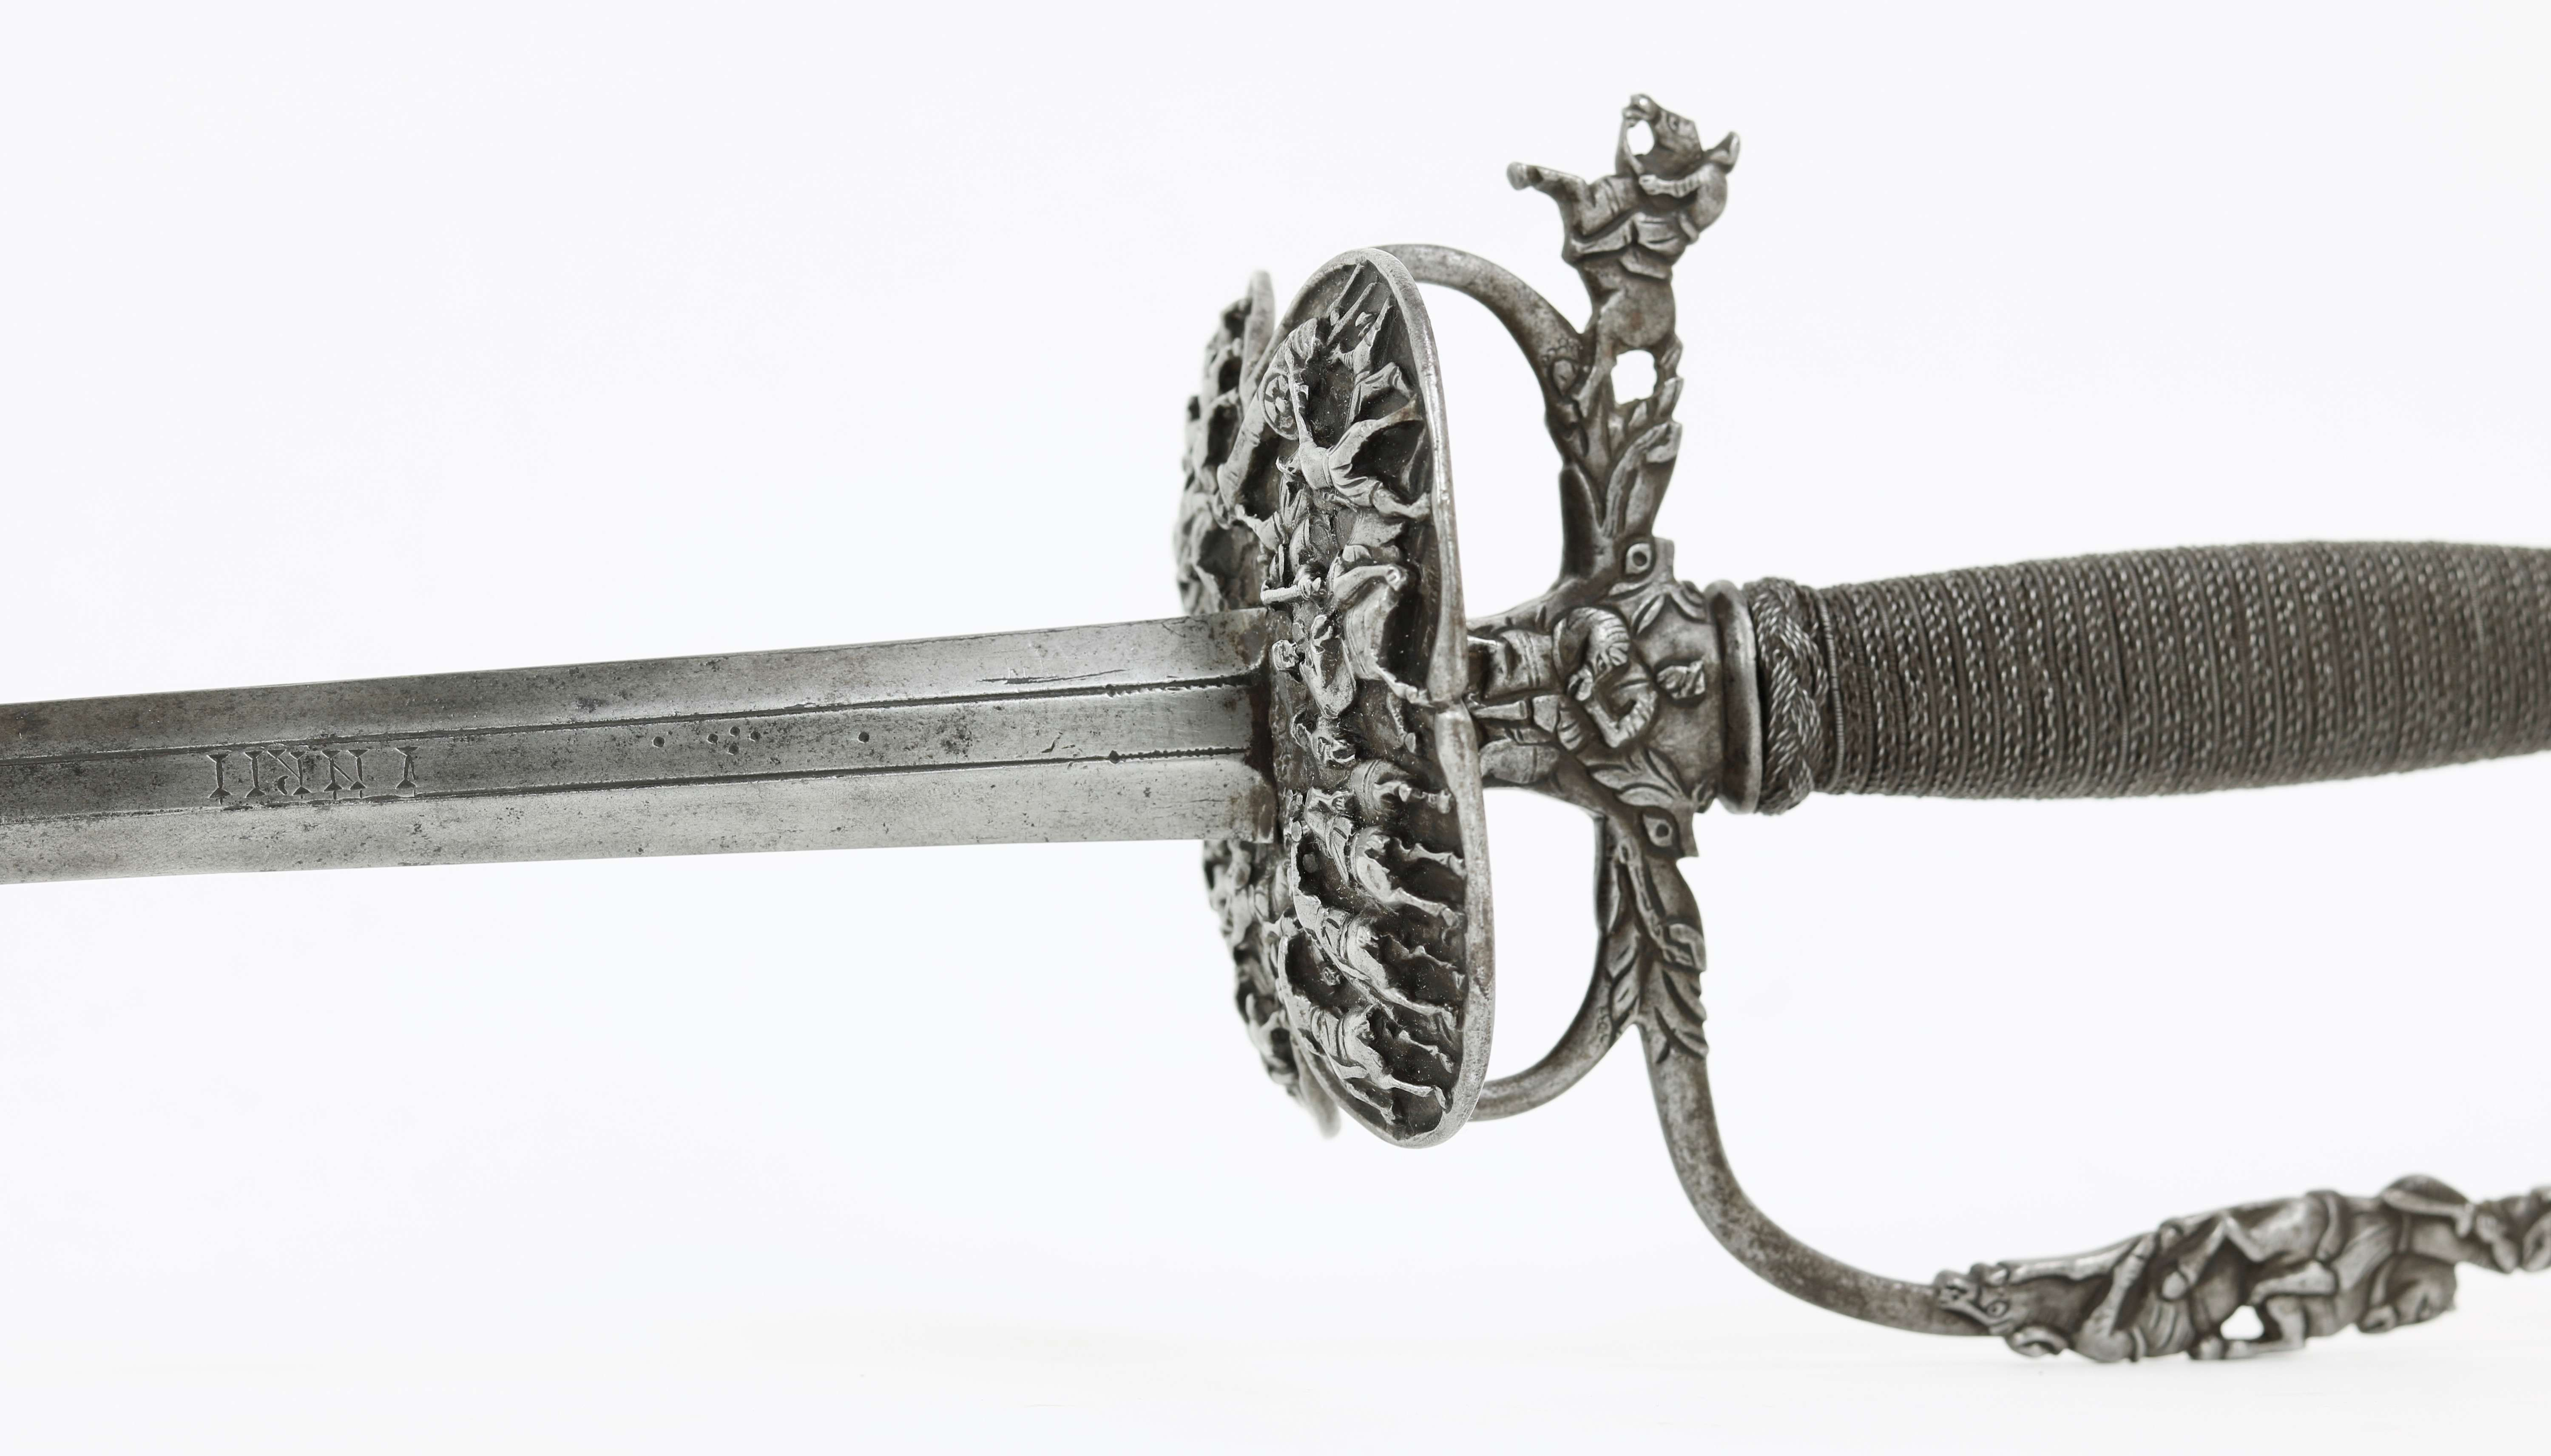 Chiseled iron Dutch smallsword